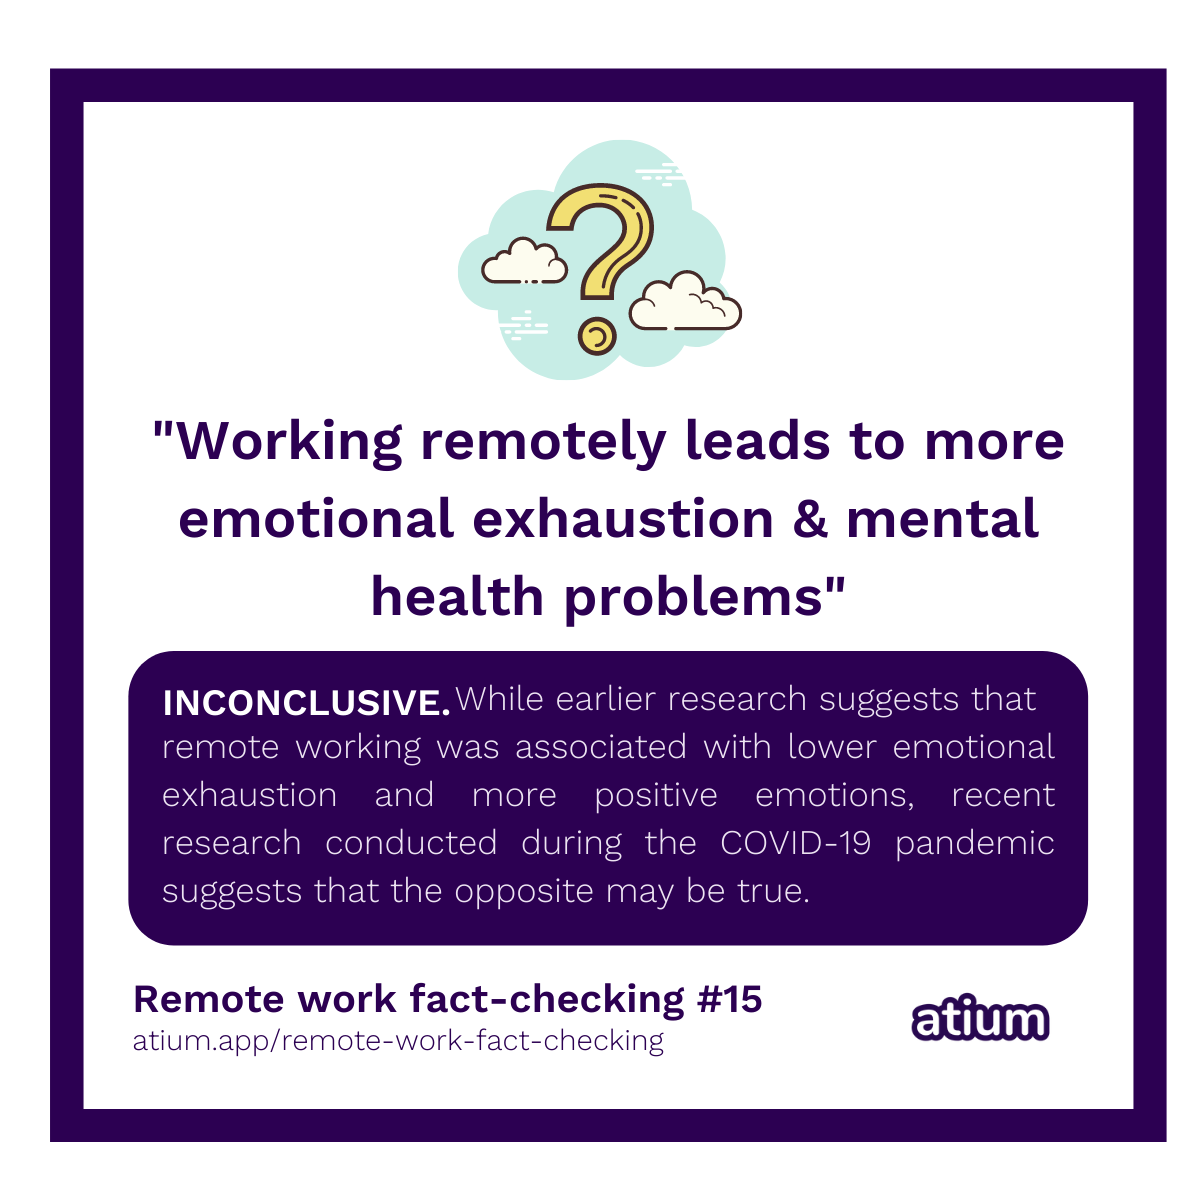 Working remotely leads to more emotional exhaustion & mental health problems